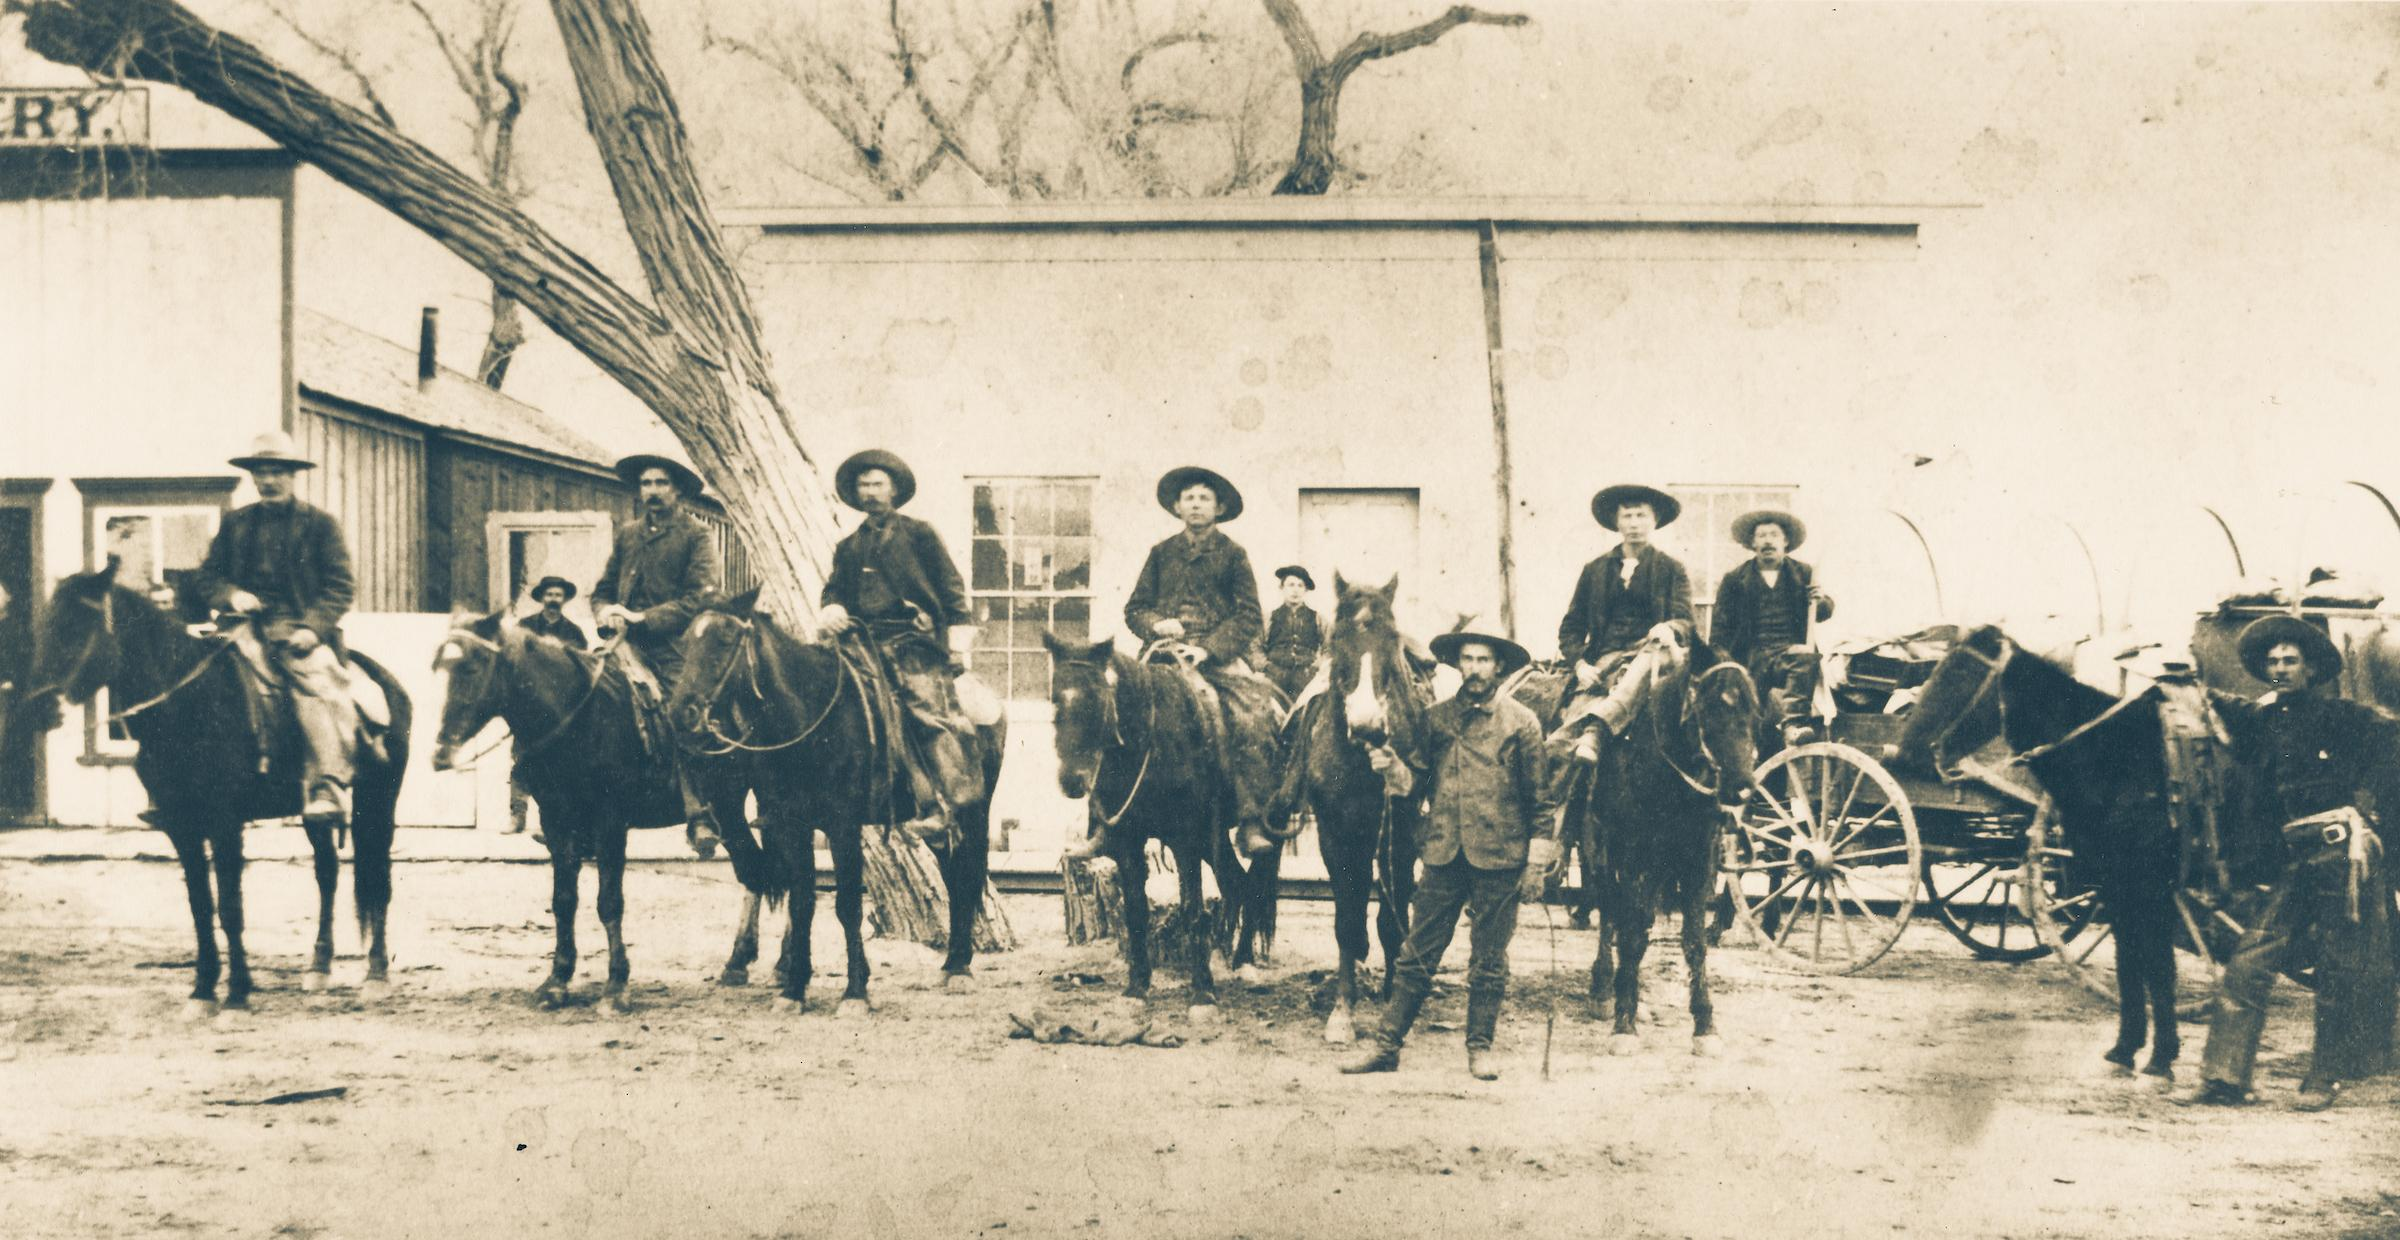 Hashknife cowboys Arizona 1880s